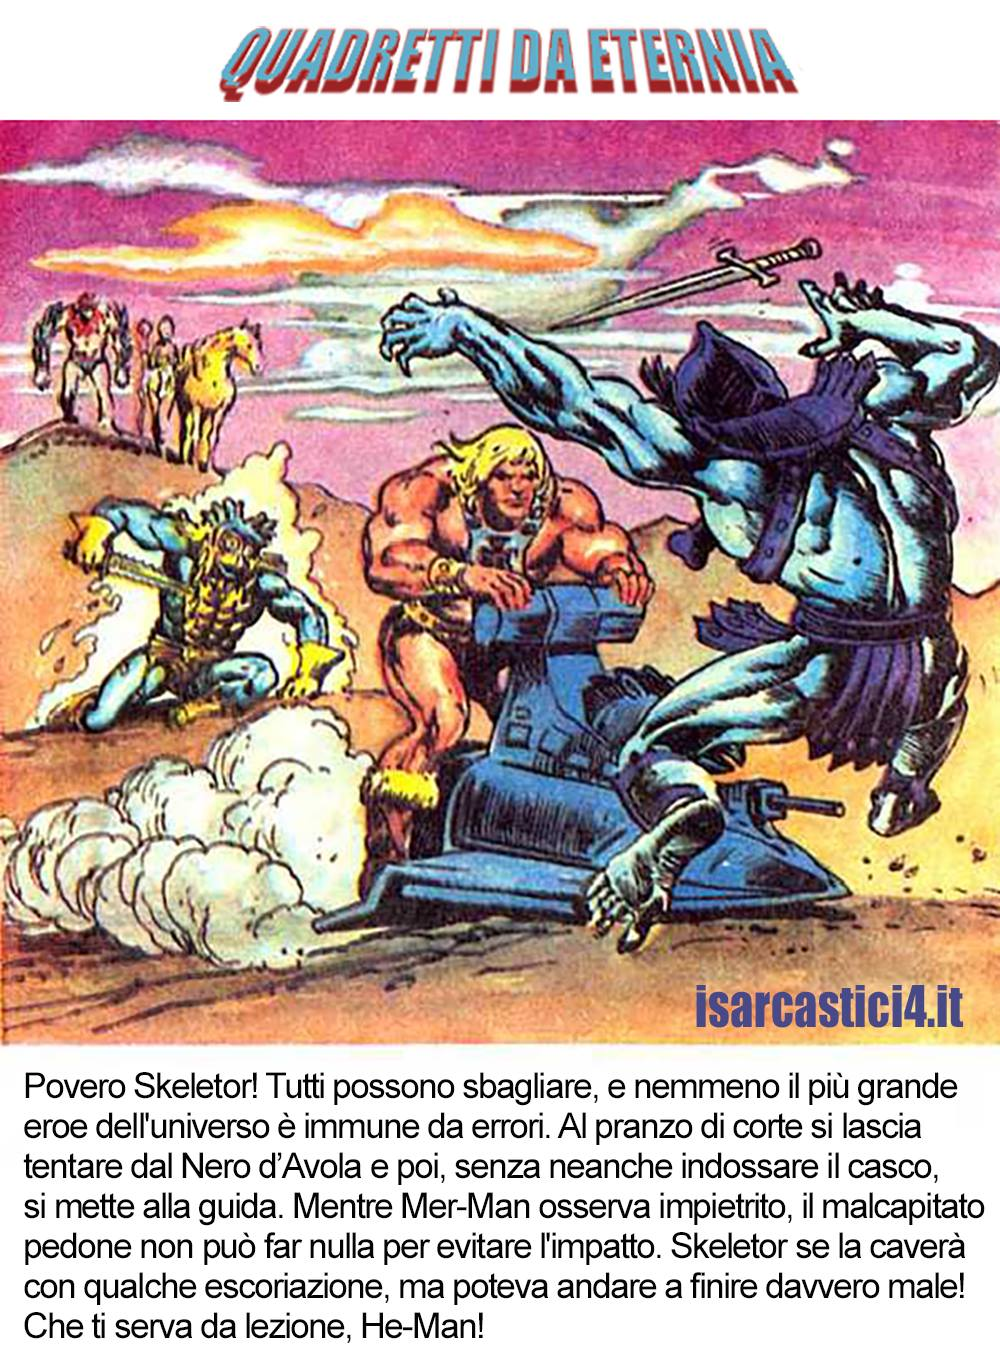 MOTU, Masters Of The Universe meme ita - Quadretti di Eternia/05